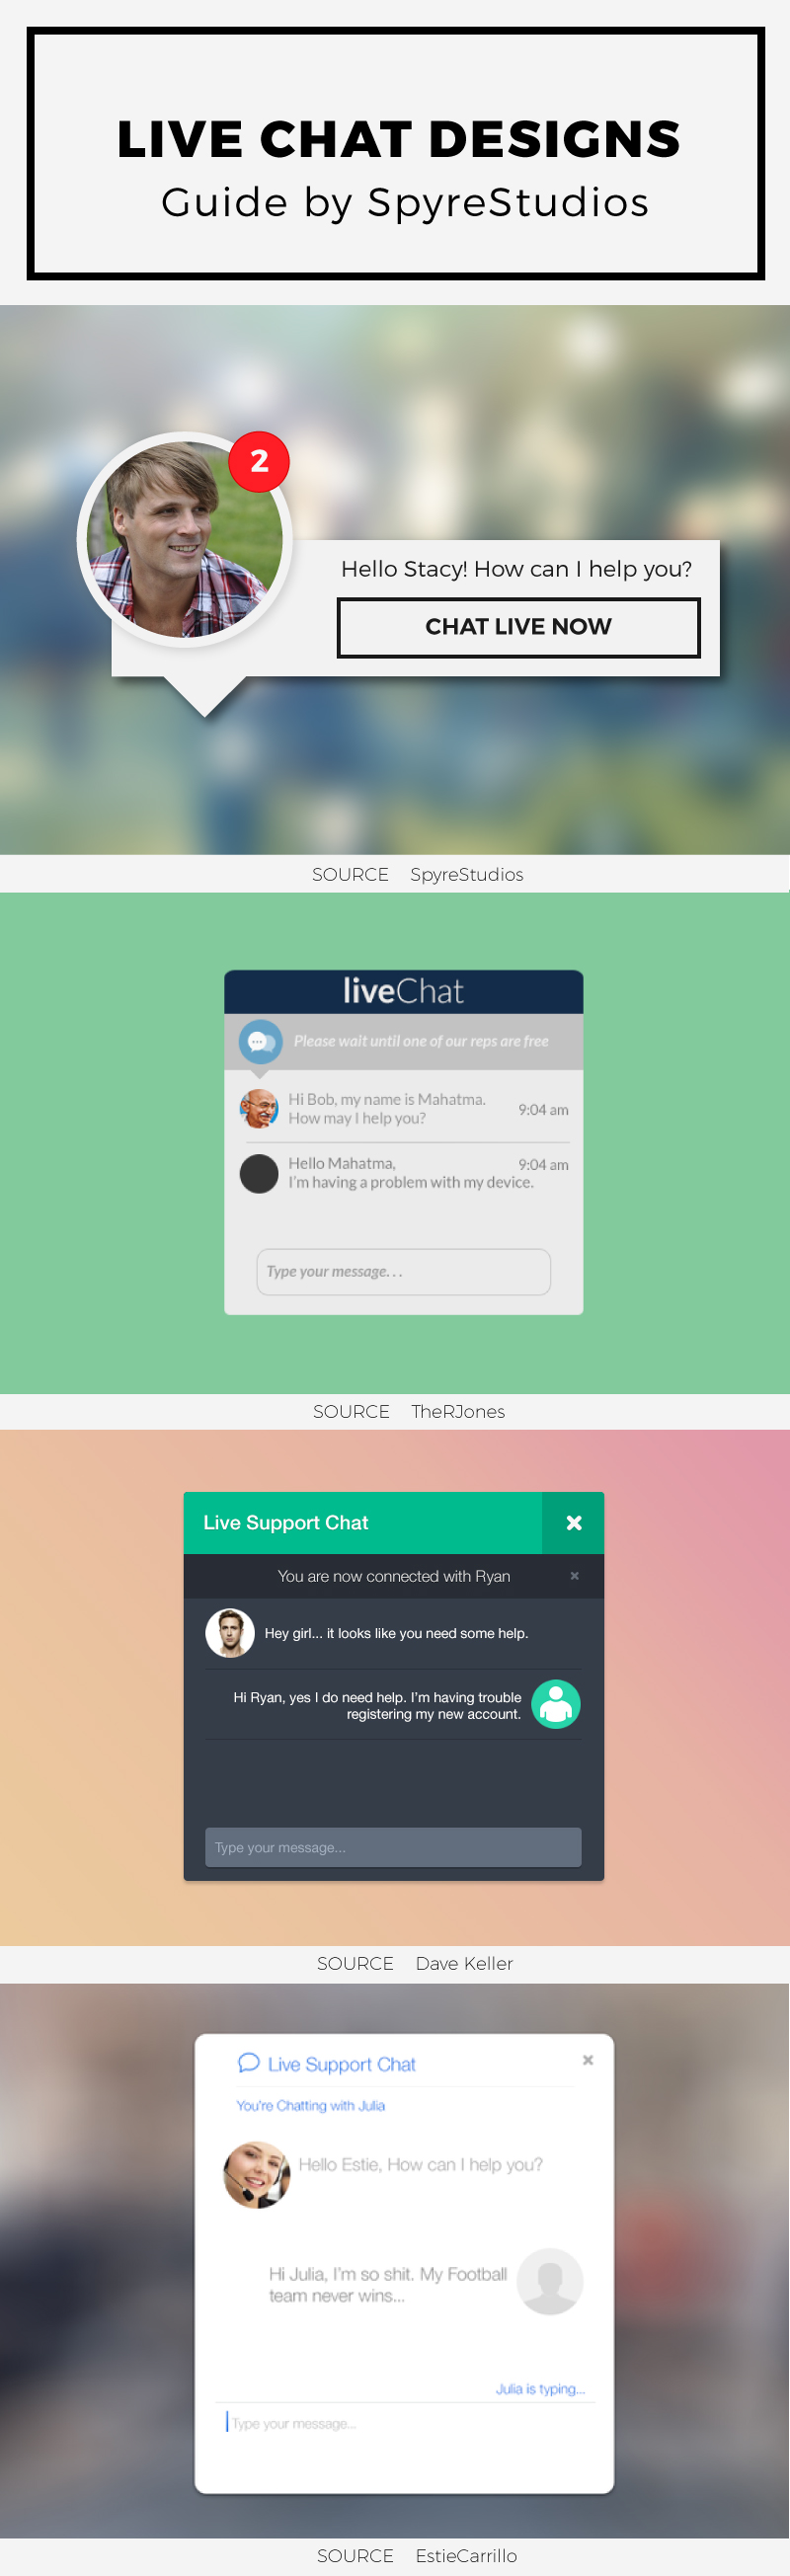 Live Chat UI designs